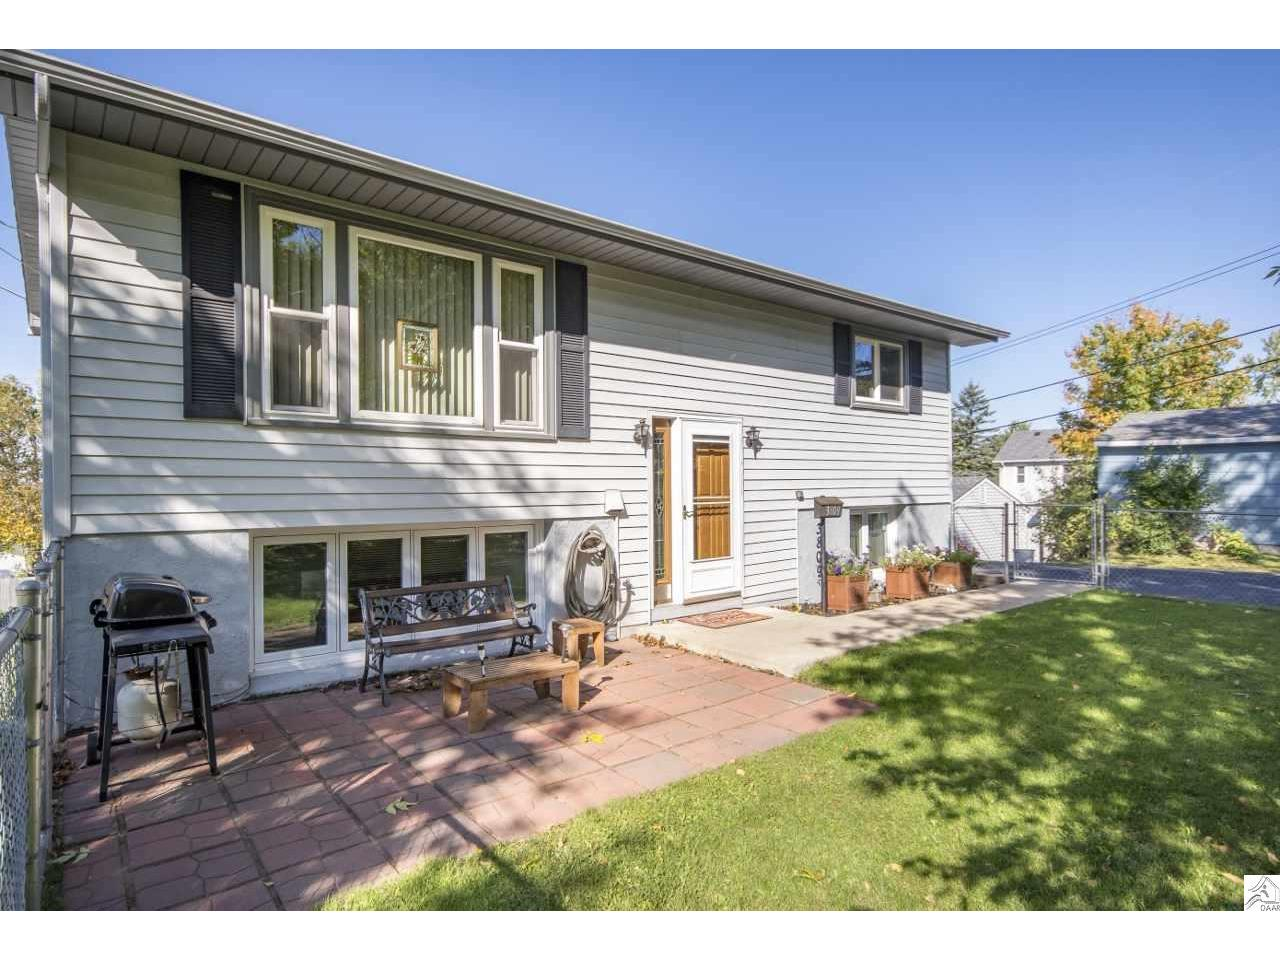 3809 Allendale Ave Duluth Mn 55803 Mls 6031701 Edina Realty